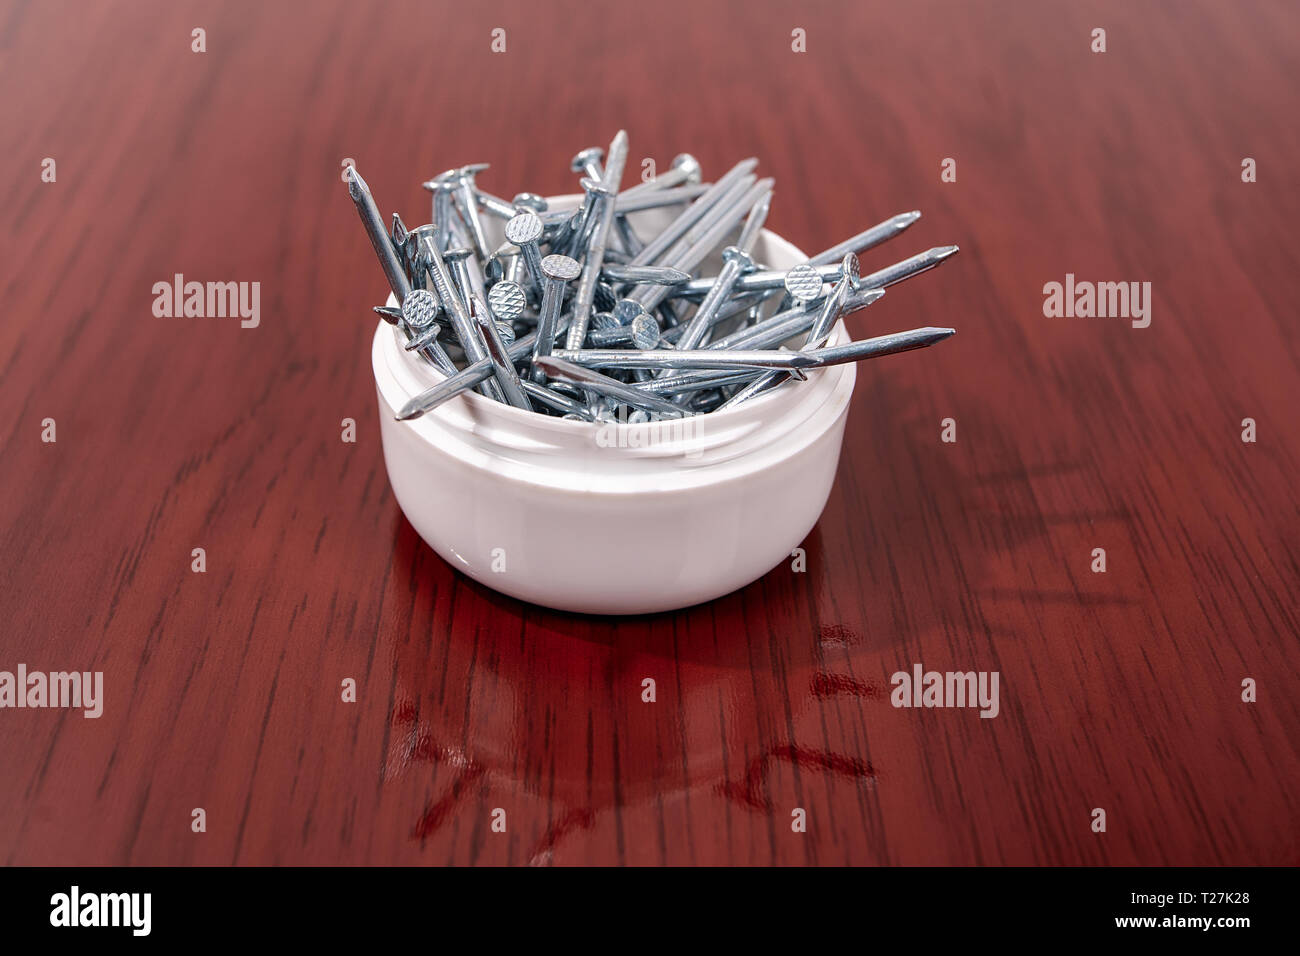 A group of nails (lace) in a bowl on a wooden surface finish - Stock Image